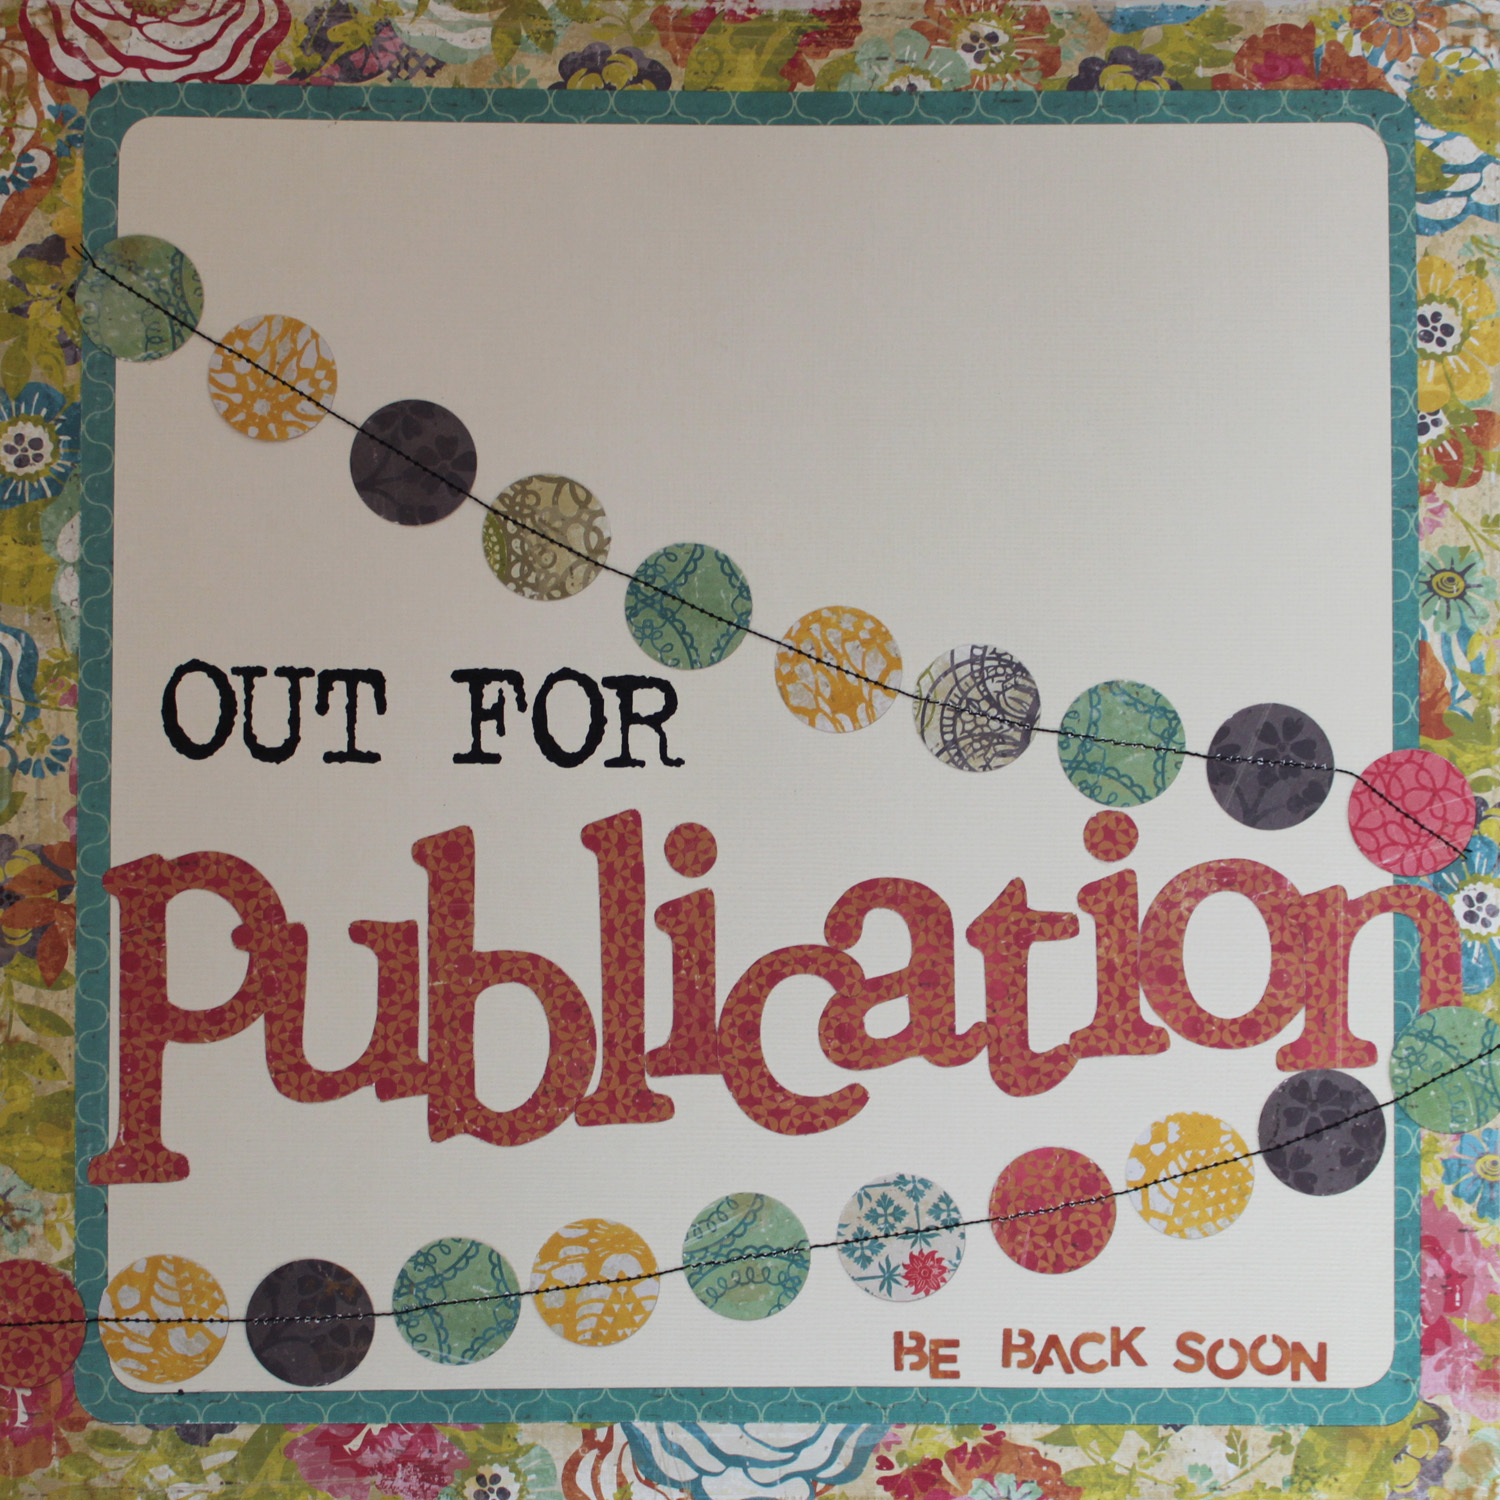 How to scrapbook with glitter paper - I Also Ended Up Loving The Heidi Swapp Mistable Letters That Were In The Studio Calico Kit I Loved Being Able To Mist Them Whatever Color Matched Best With